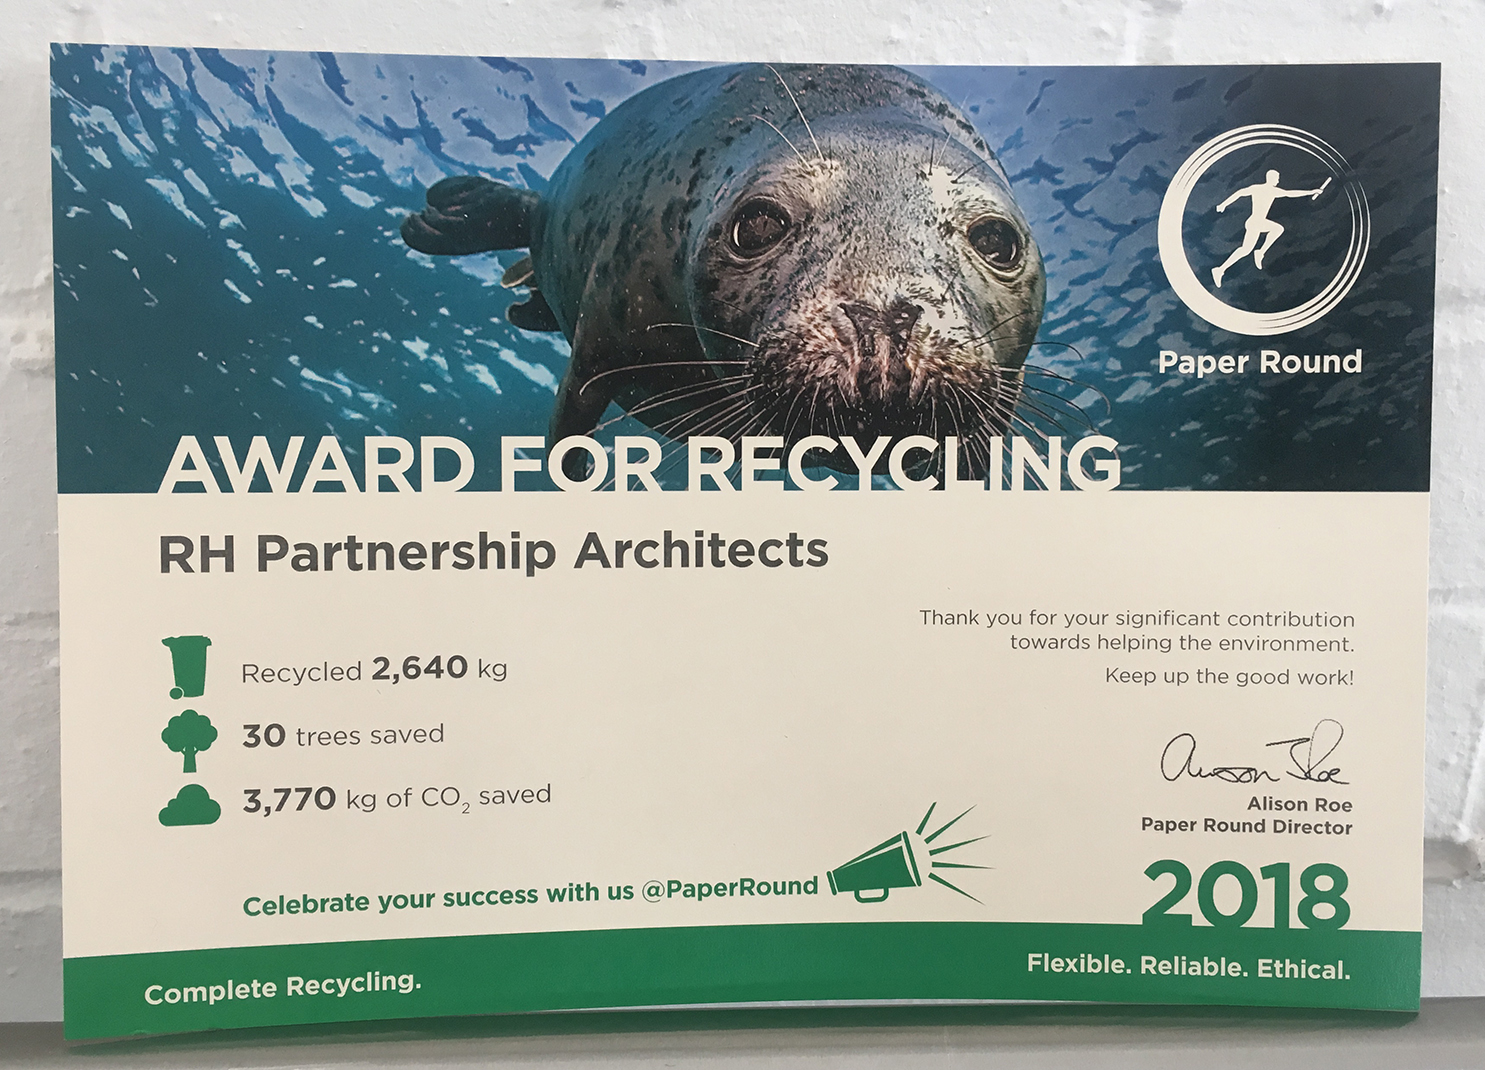 rhp Wins Award for Recycling